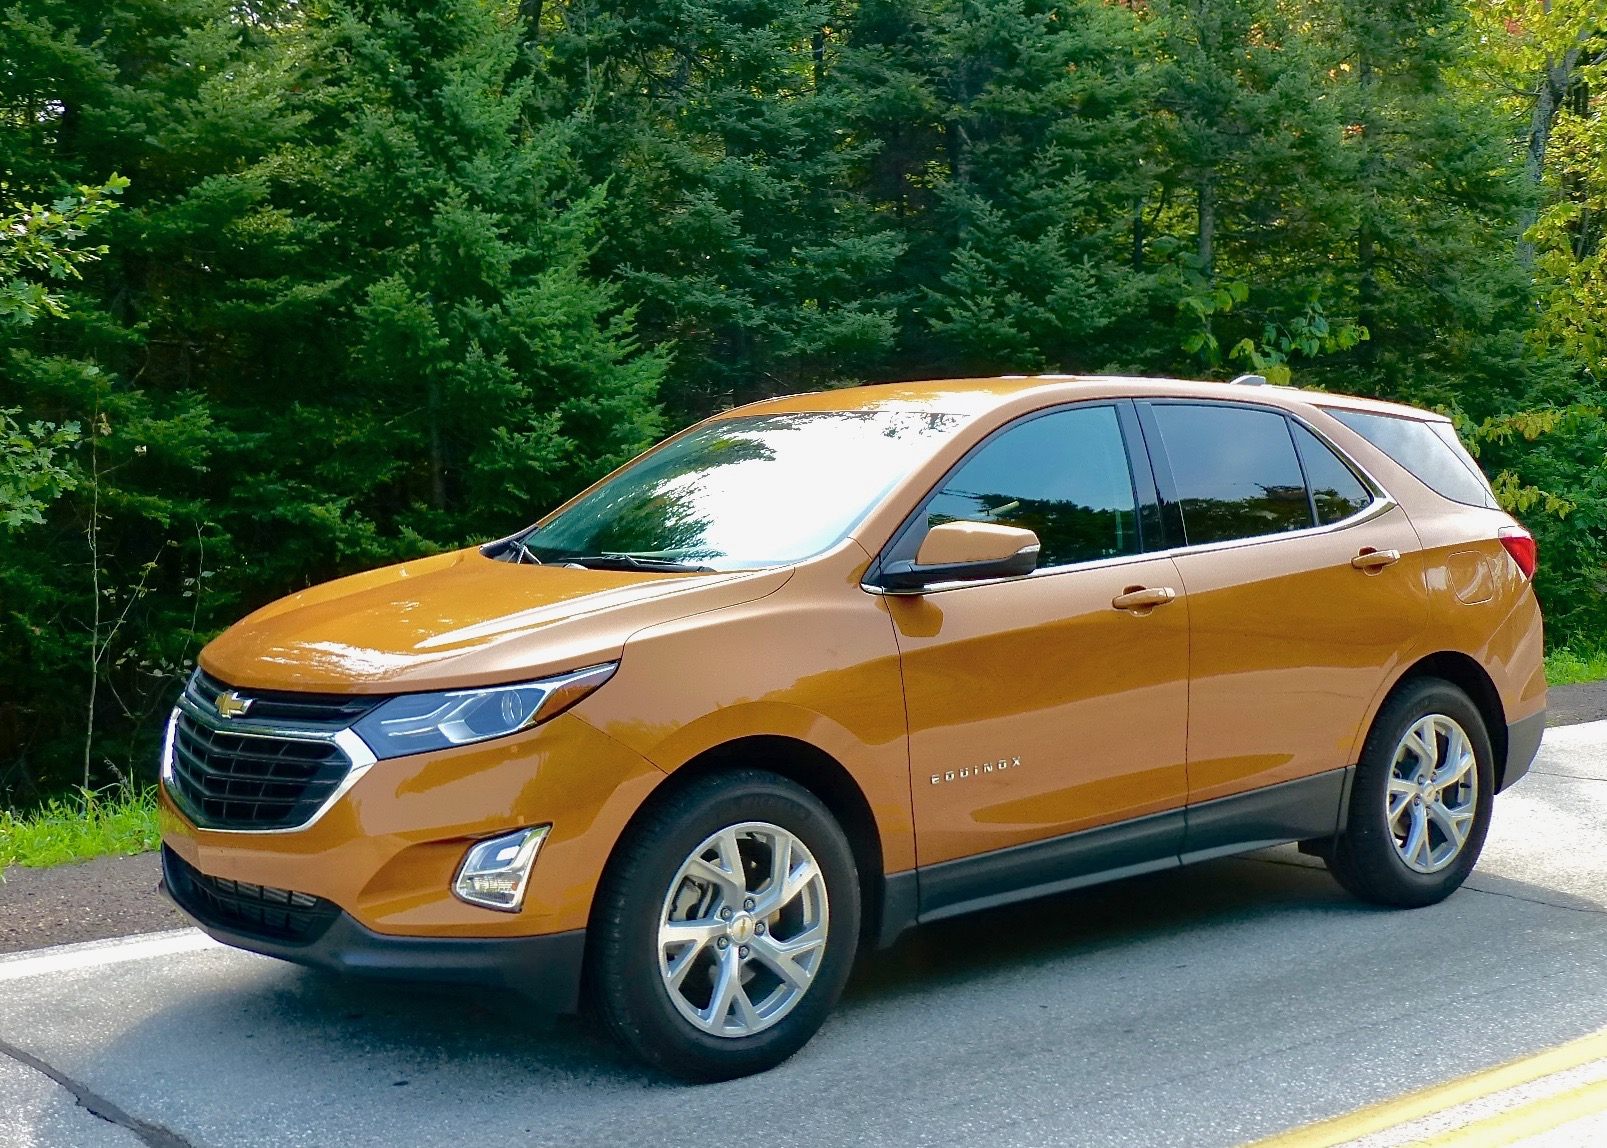 Revised Chevrolet Equinox is a new-generation size alongside traditional Chevrolet SUVs.